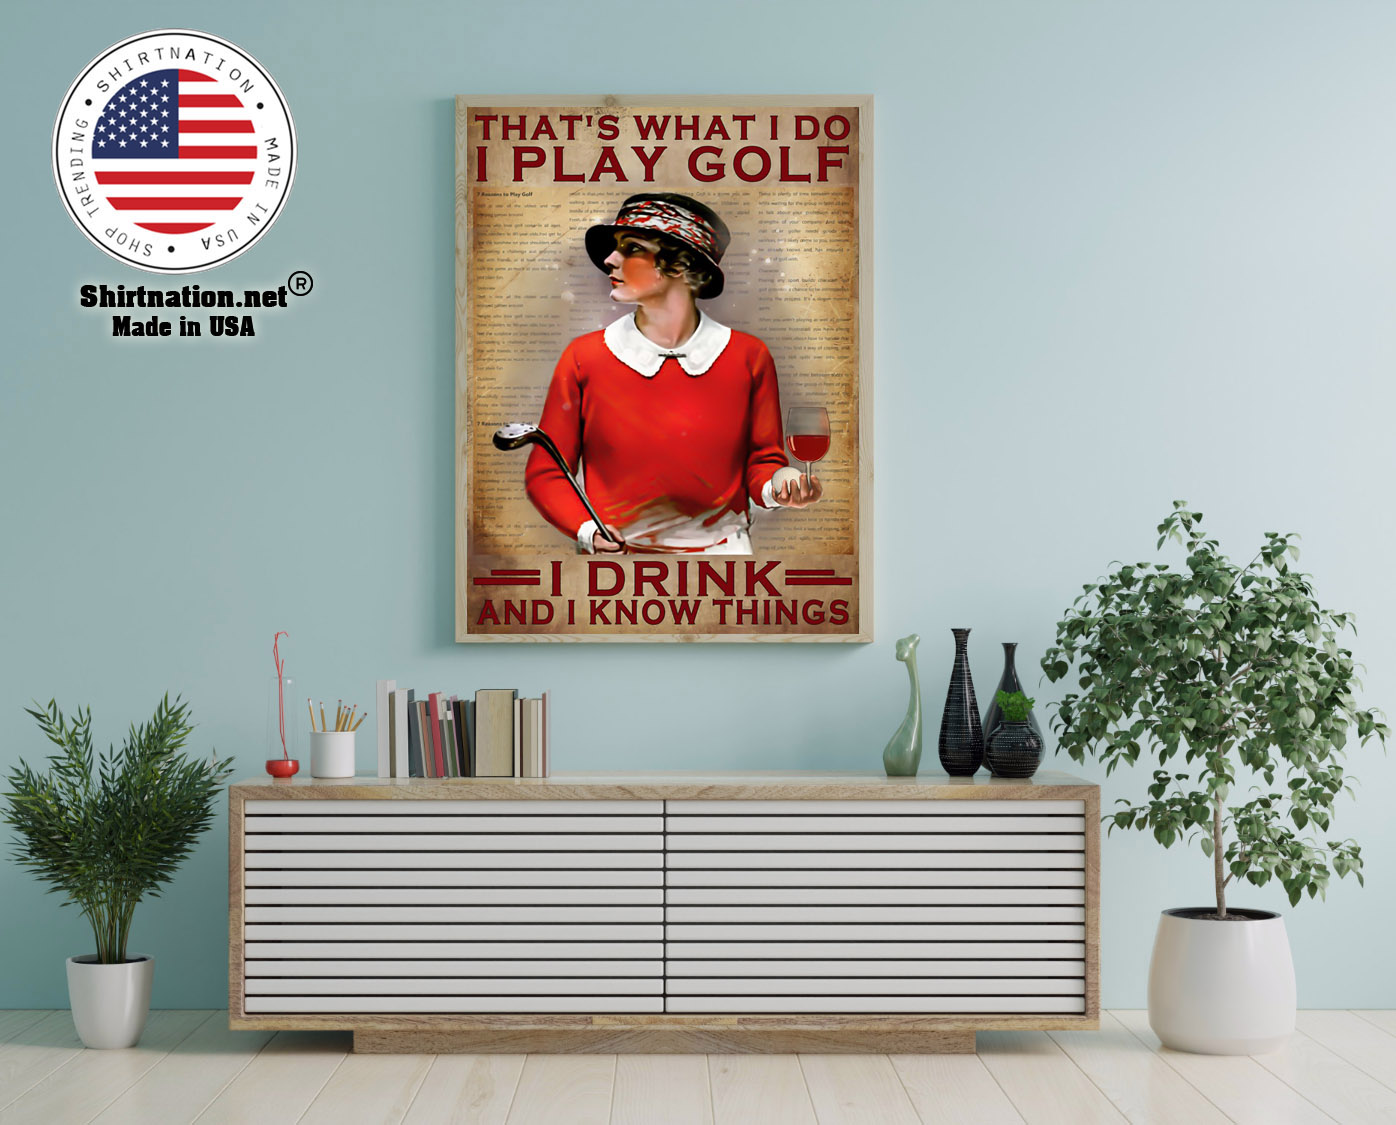 Thats what I do I play golf I drink and I know things poster 12